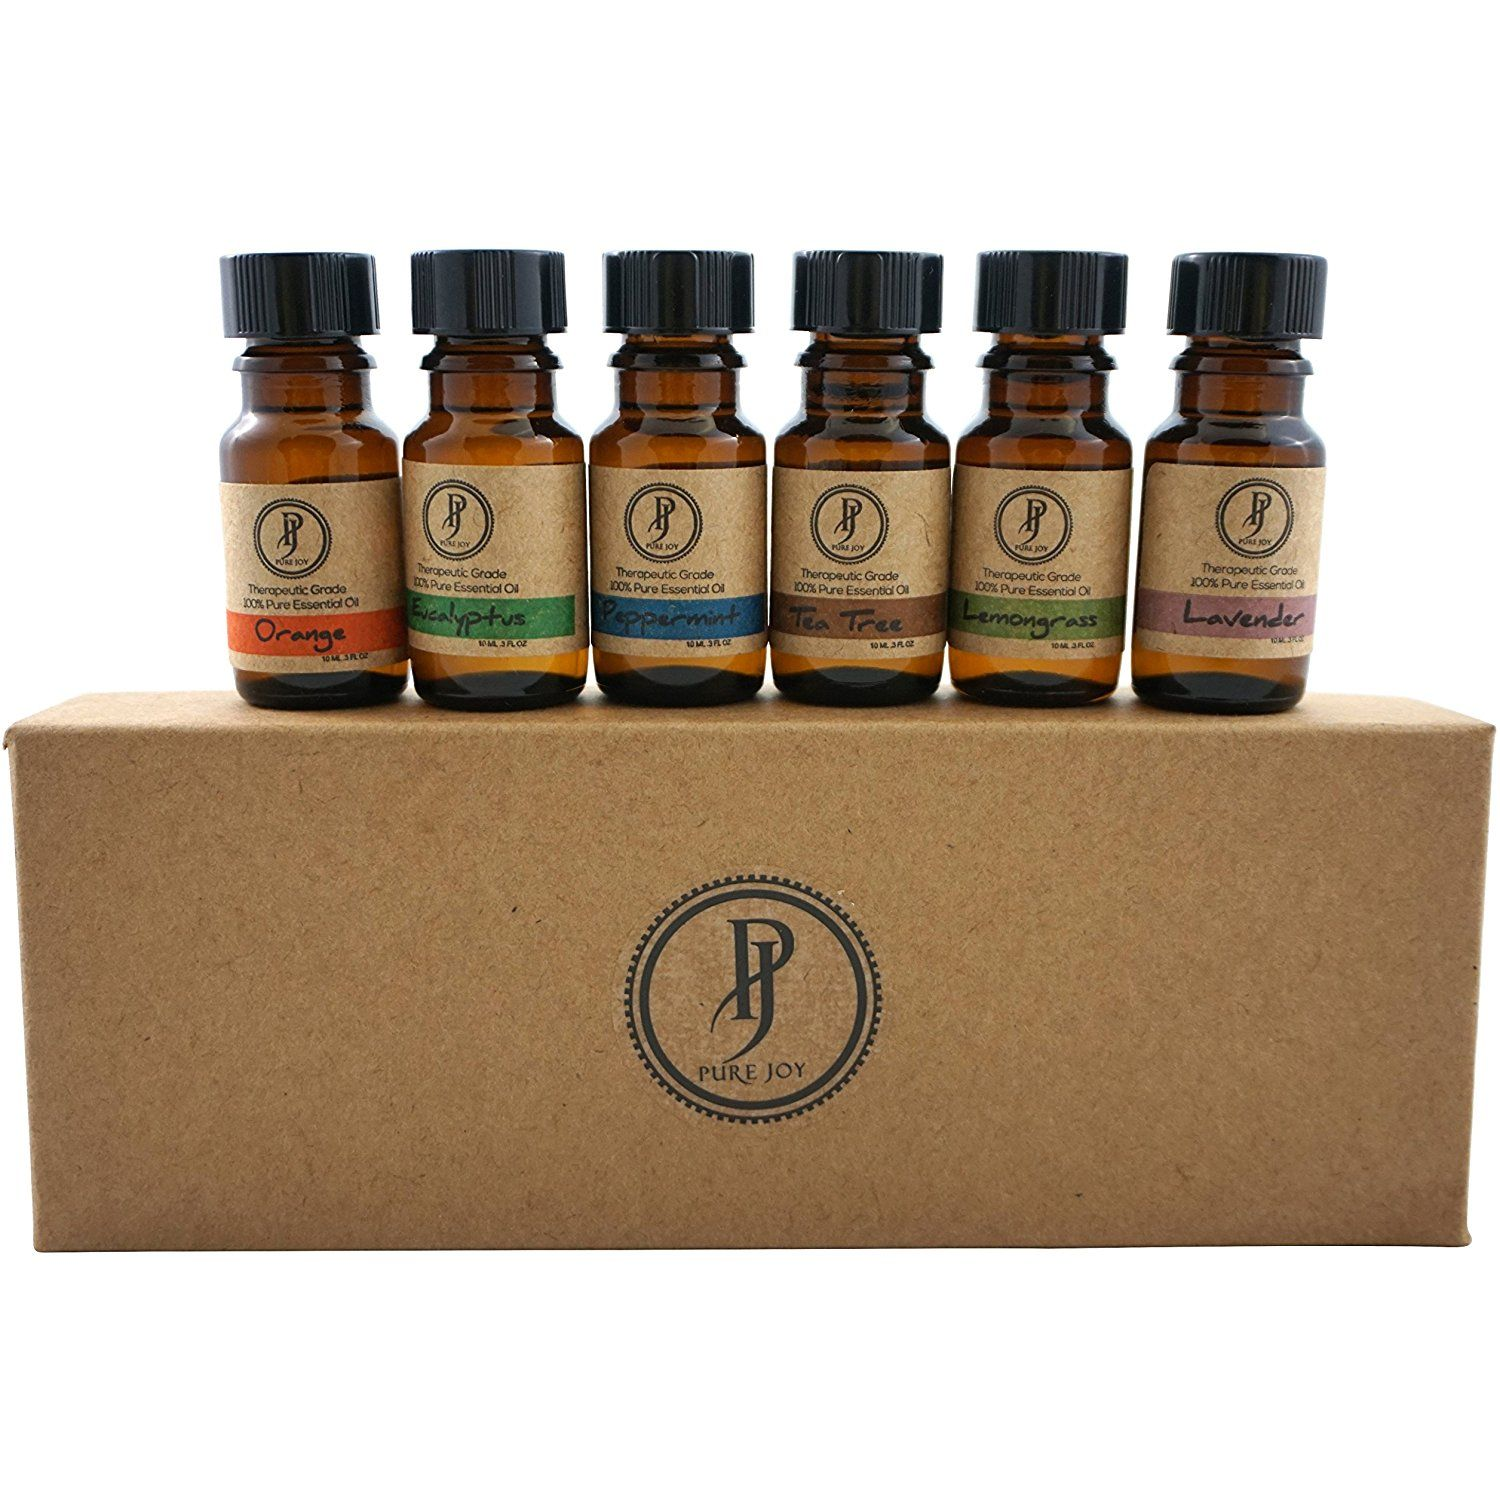 Pure Joy Aromatherapy Premium Kit Top 6 Essential Oils Gift Set 10ml ...